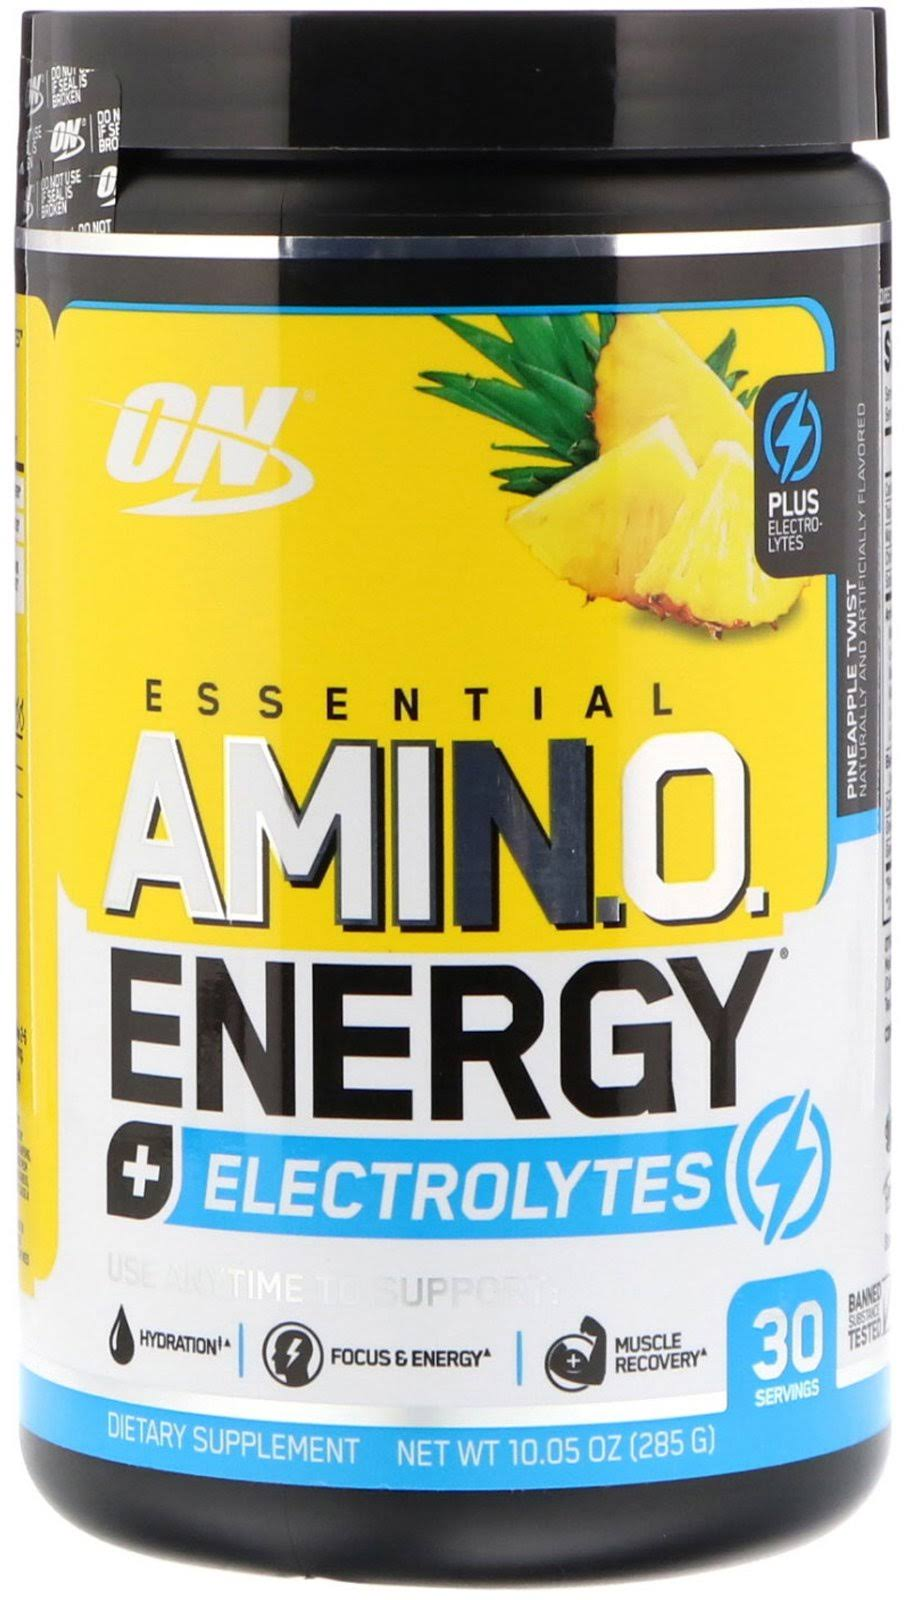 Optimum Nutrition Essential Amino Energy + Electrolytes, Pineapple Twist / 30 Servings